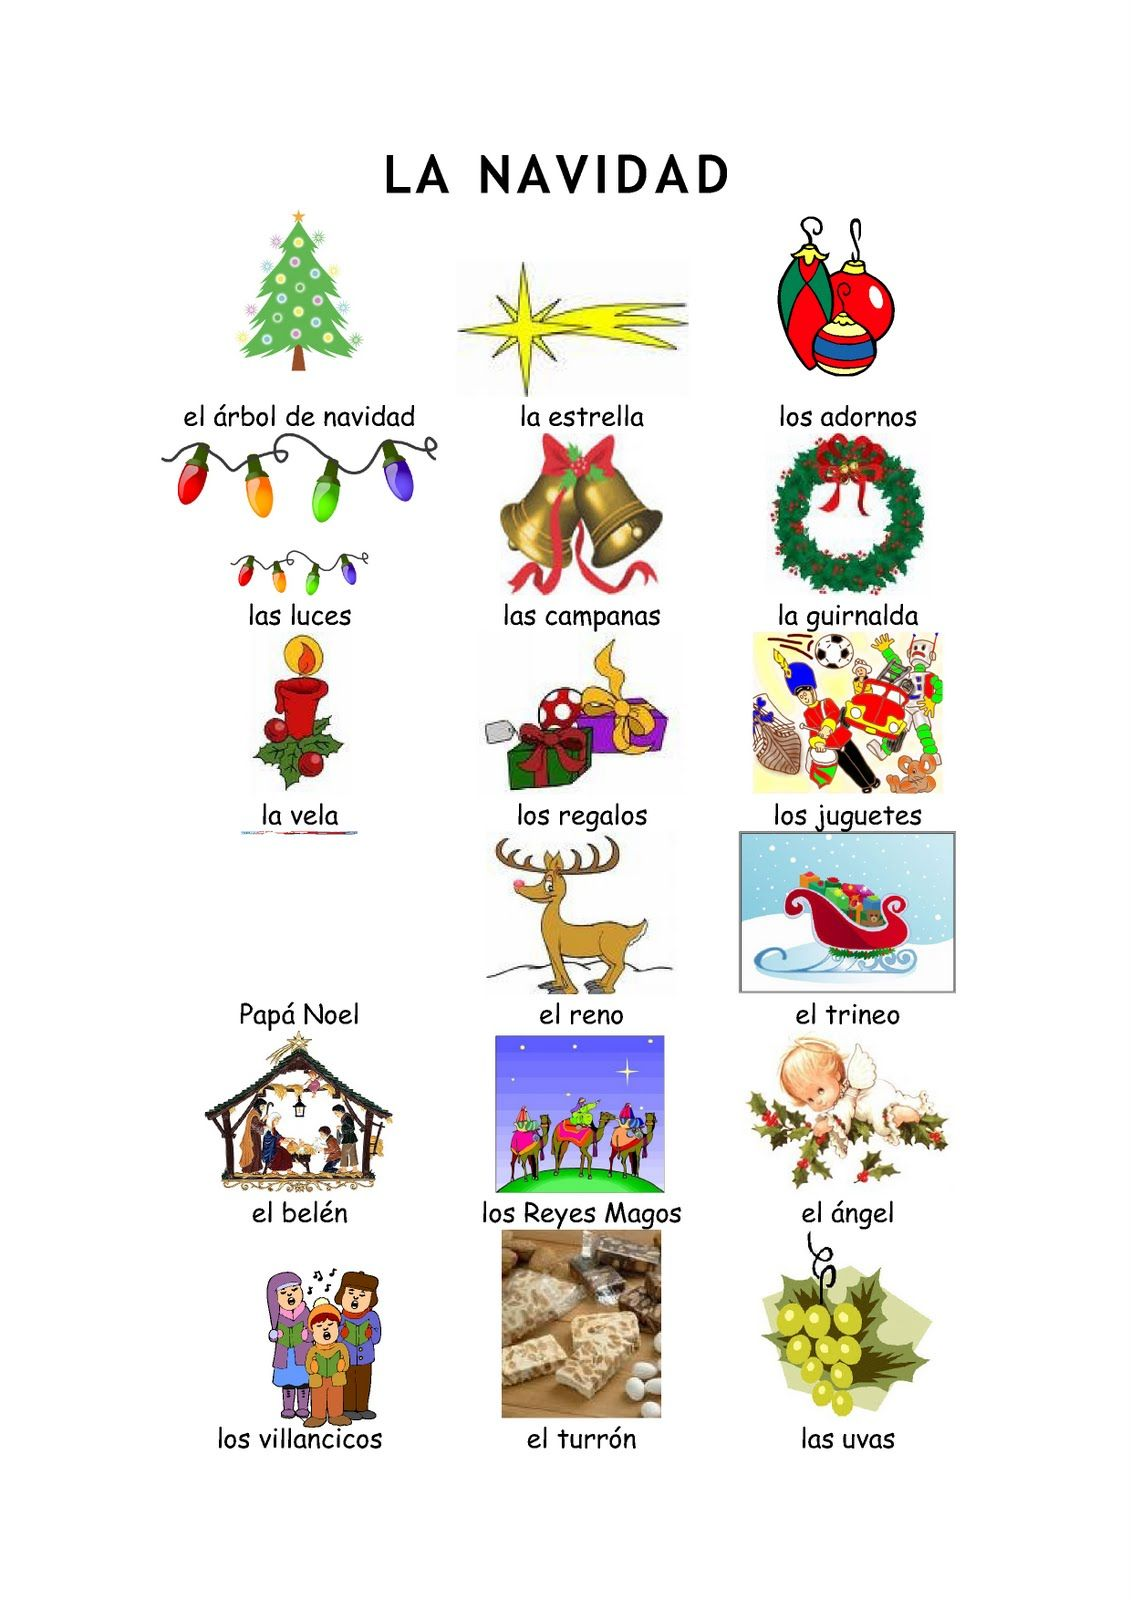 Christmas Spanish Vocabulary Vocabulario De La Navidad Spanish Christmas Vocabulary